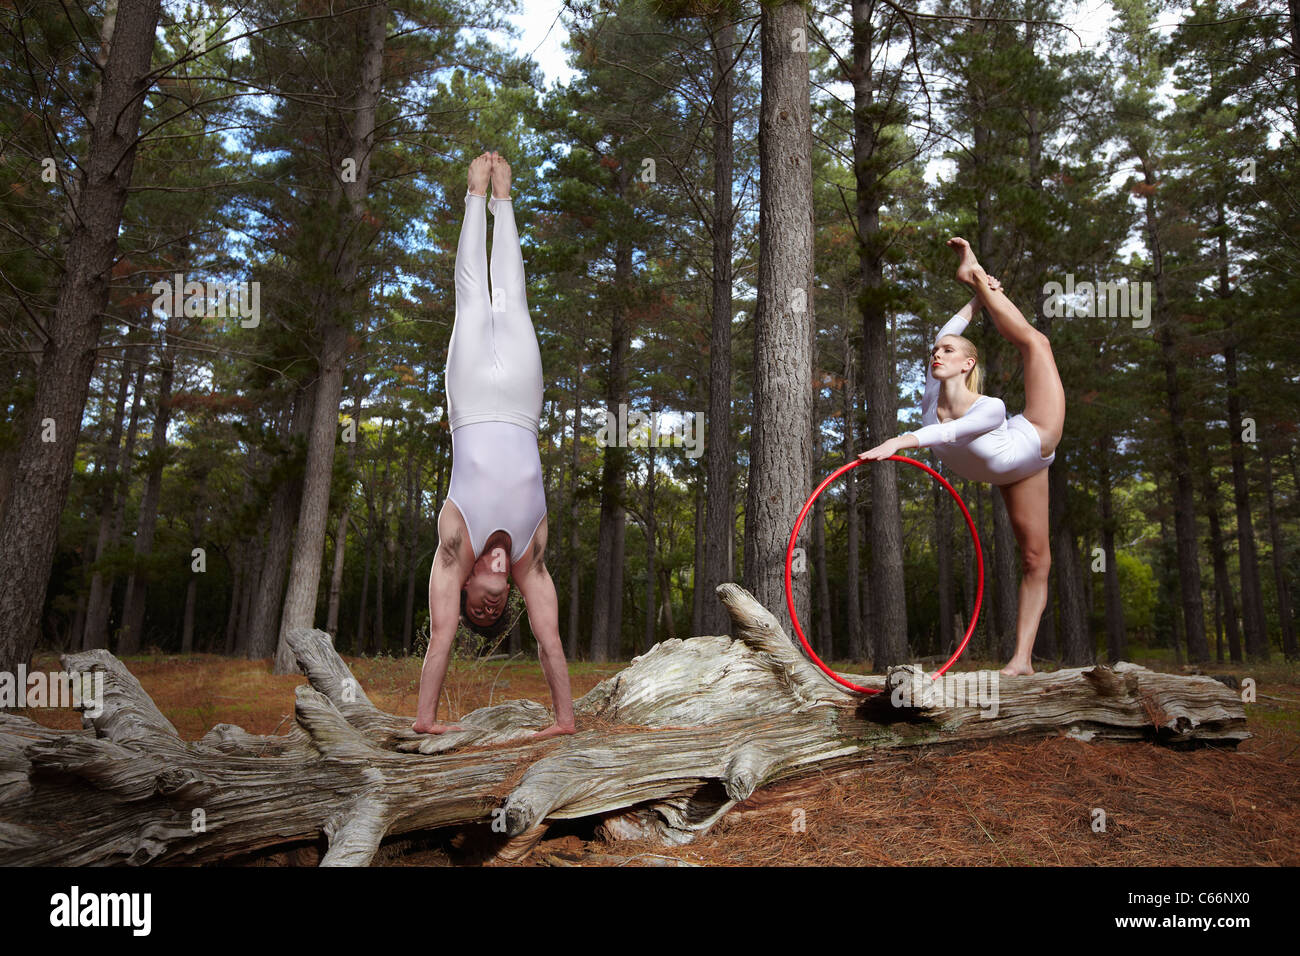 Danseurs posant sur log in forest Photo Stock